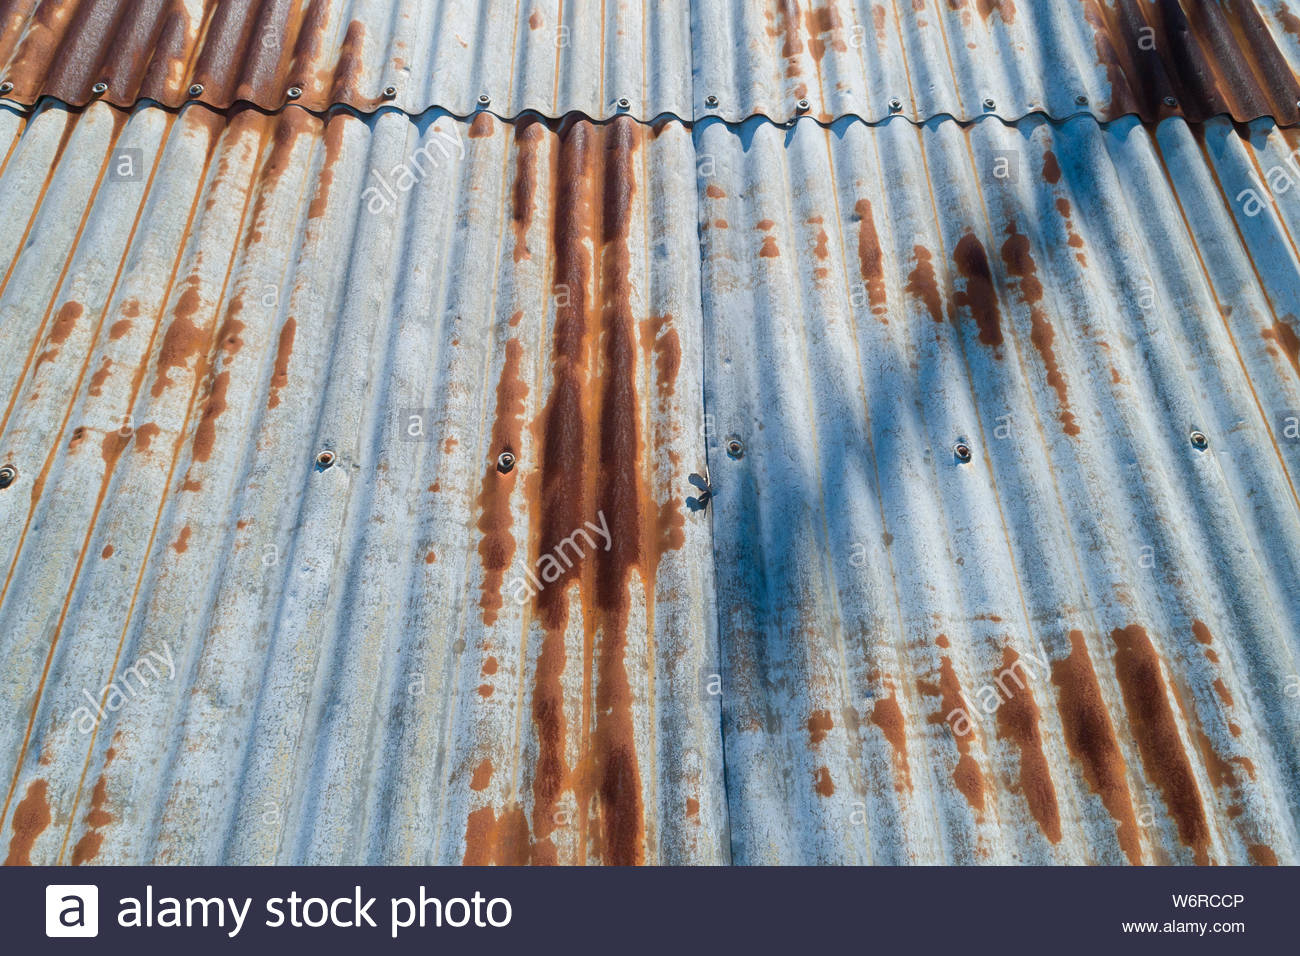 Deterioration Of The Environment Stock Photos